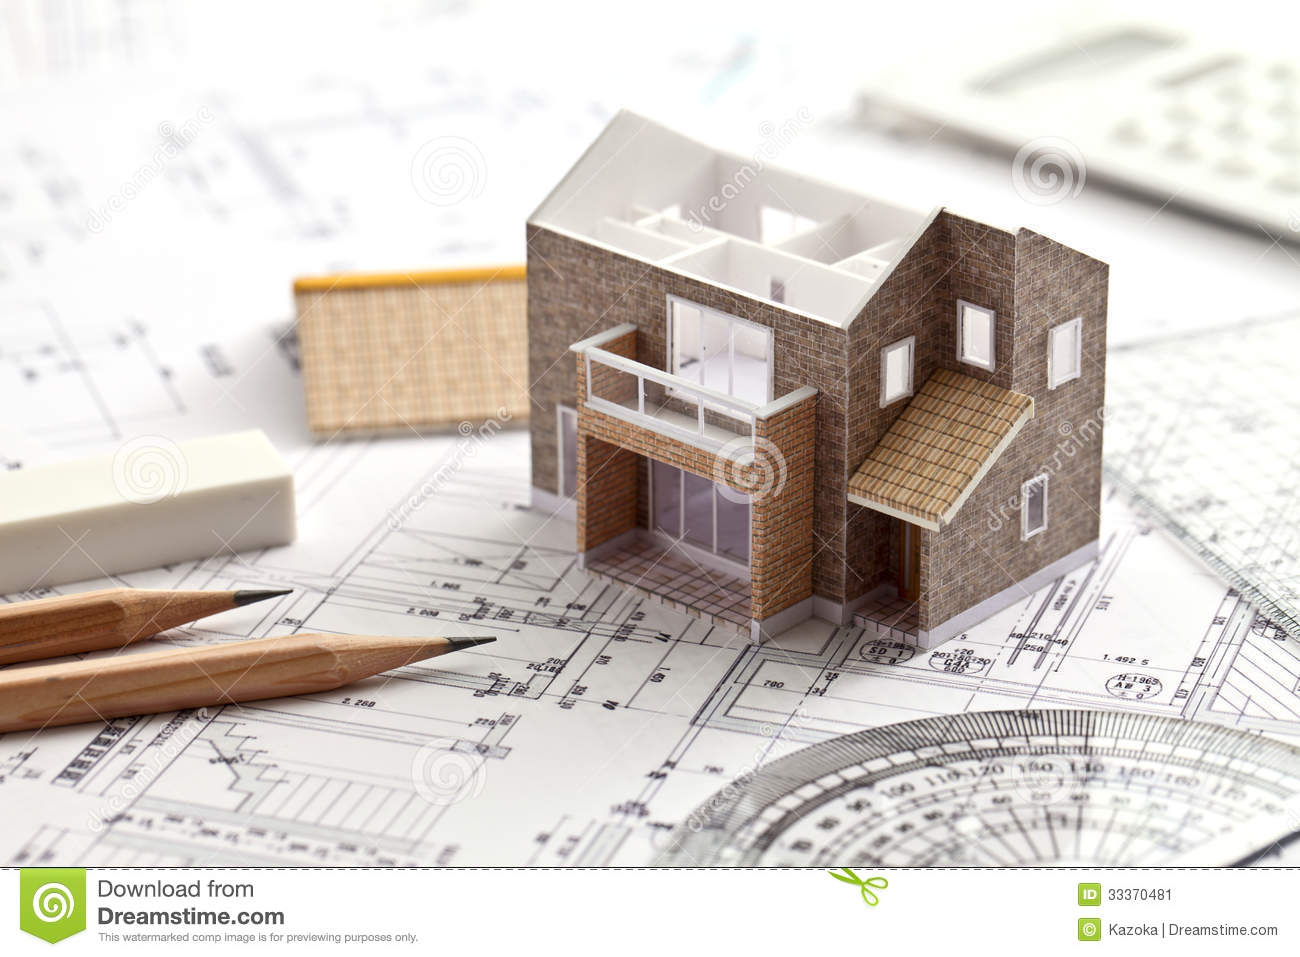 House design drawing stock image image of object paper 33370481 Draw your house